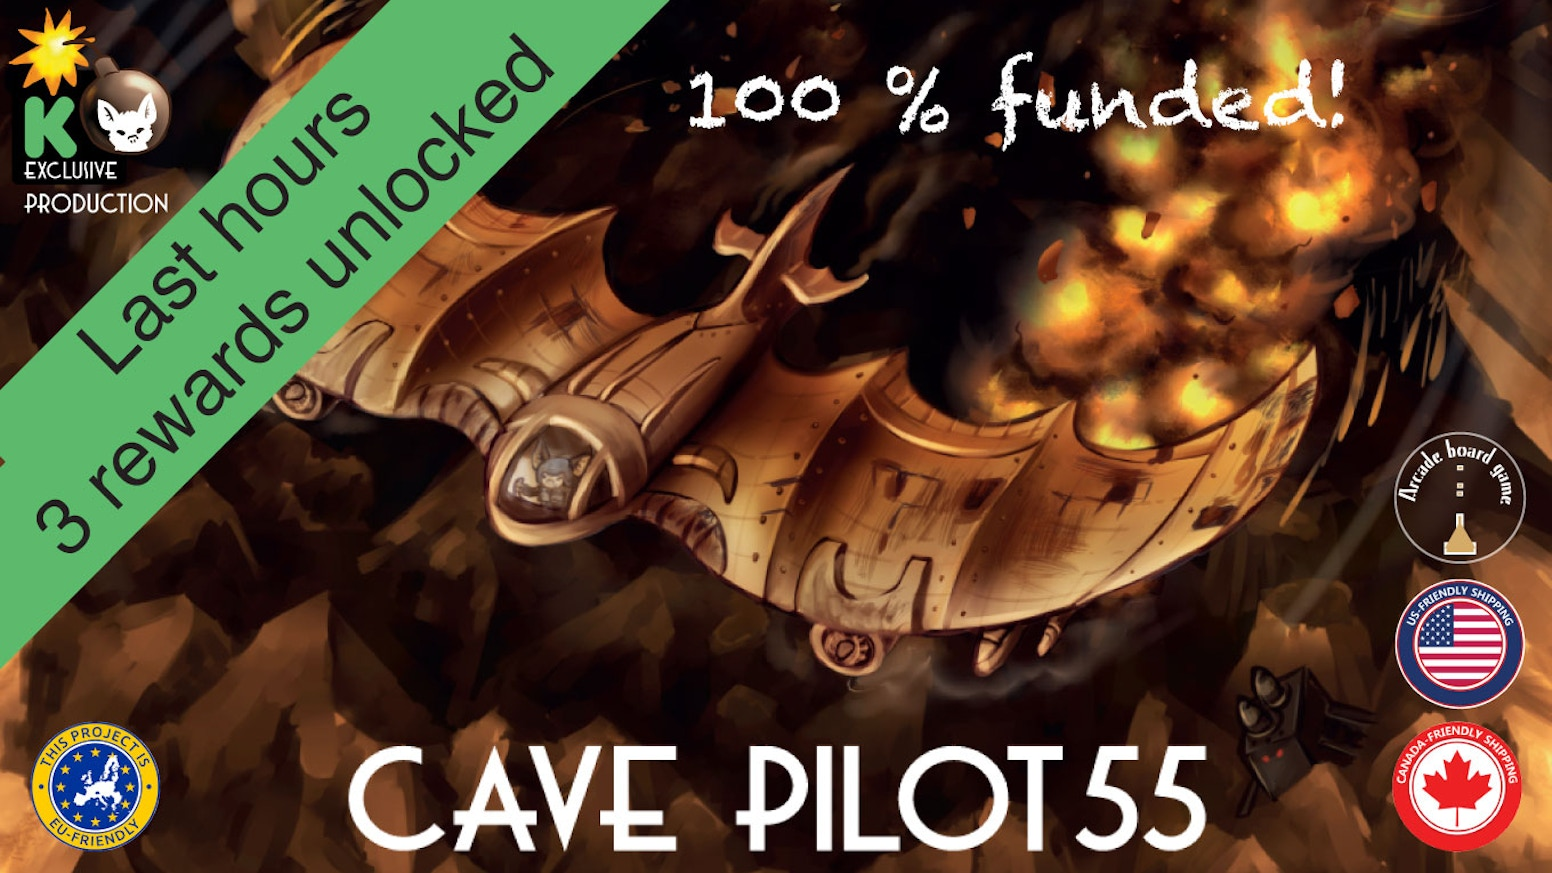 Tactical, highly replayable game, where 1-4 players race their high-tech bat-planes through a gauntlet cave